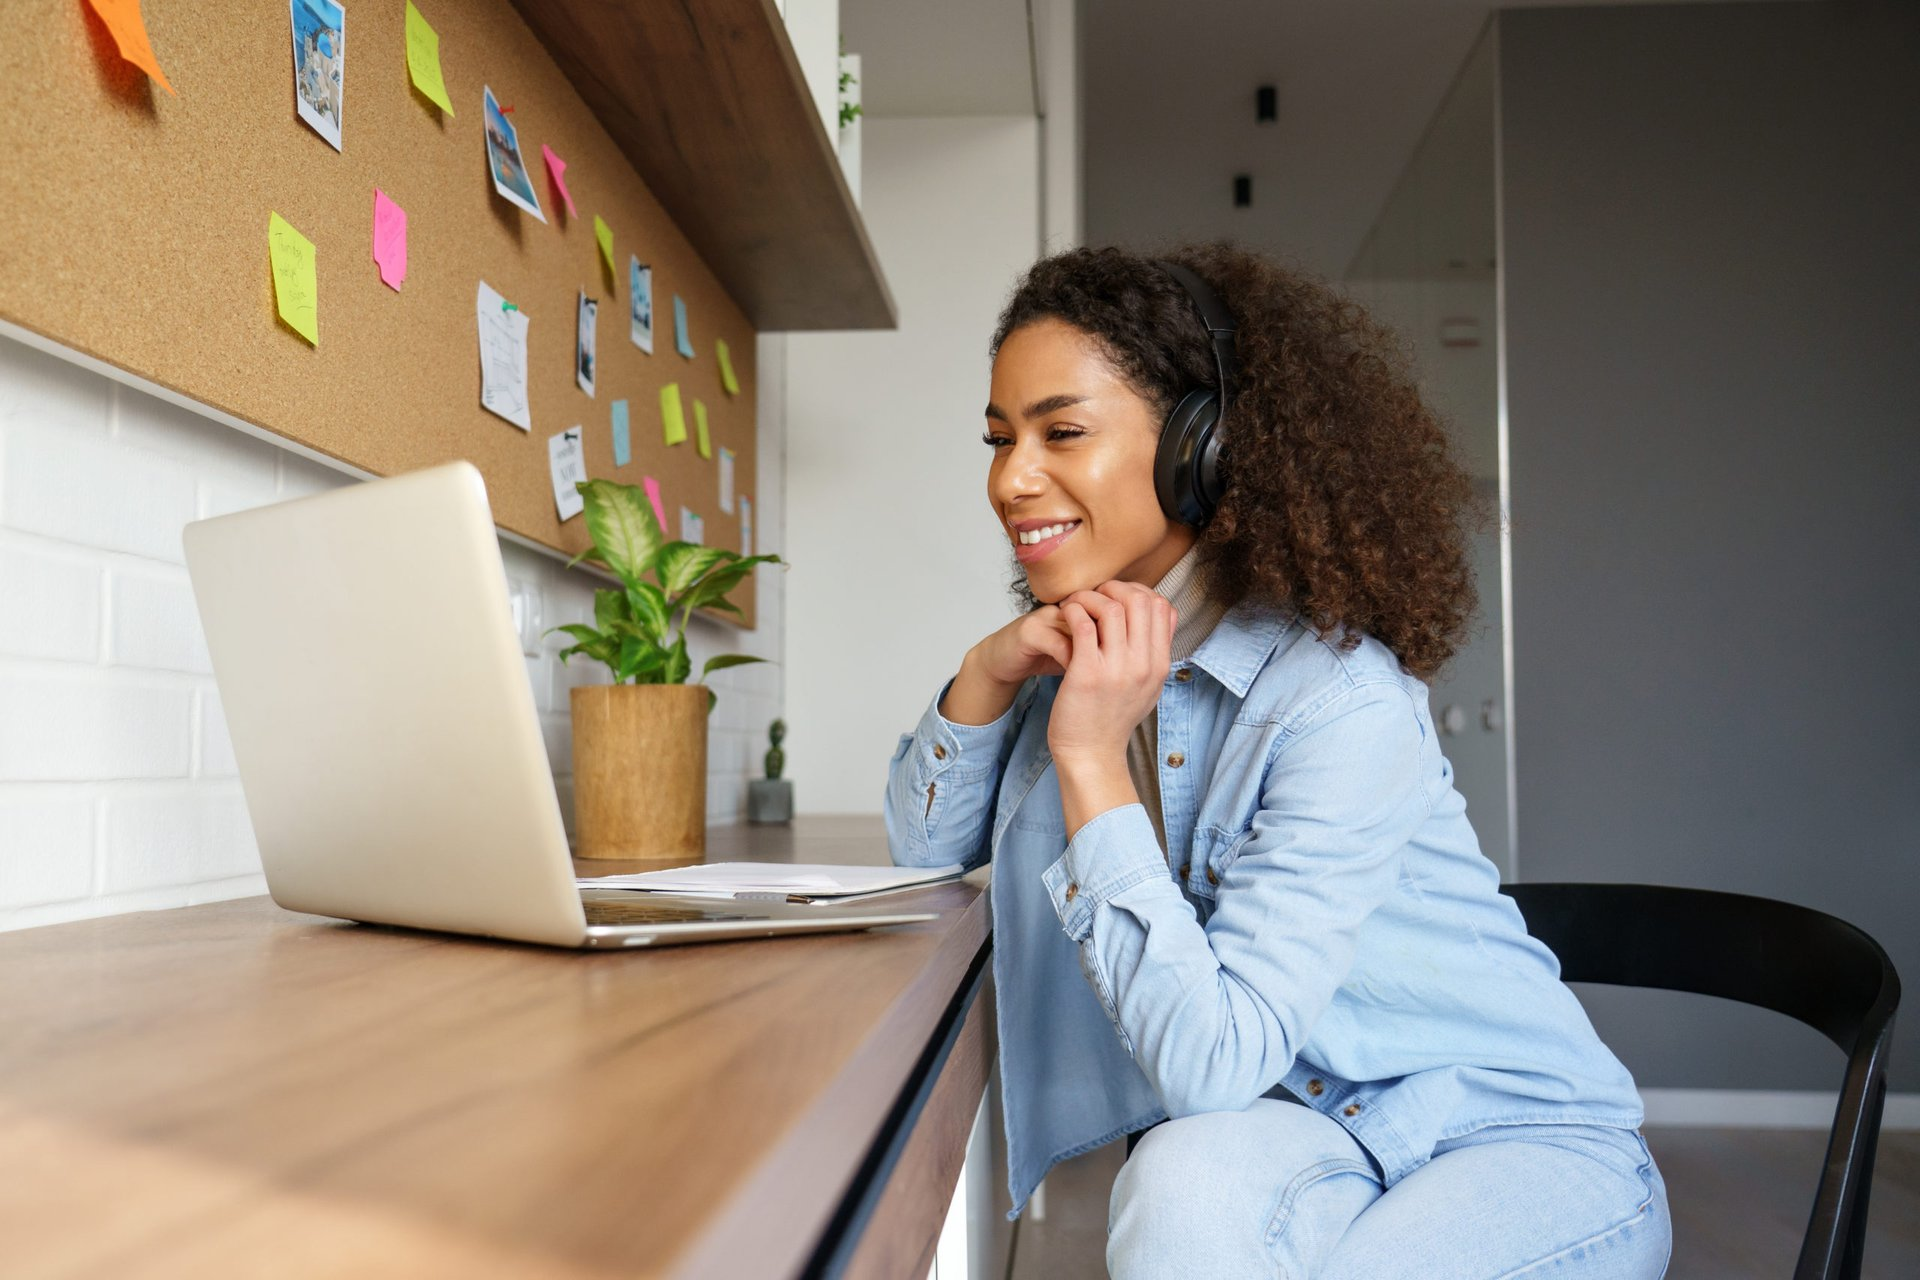 Woman working remotely helping others